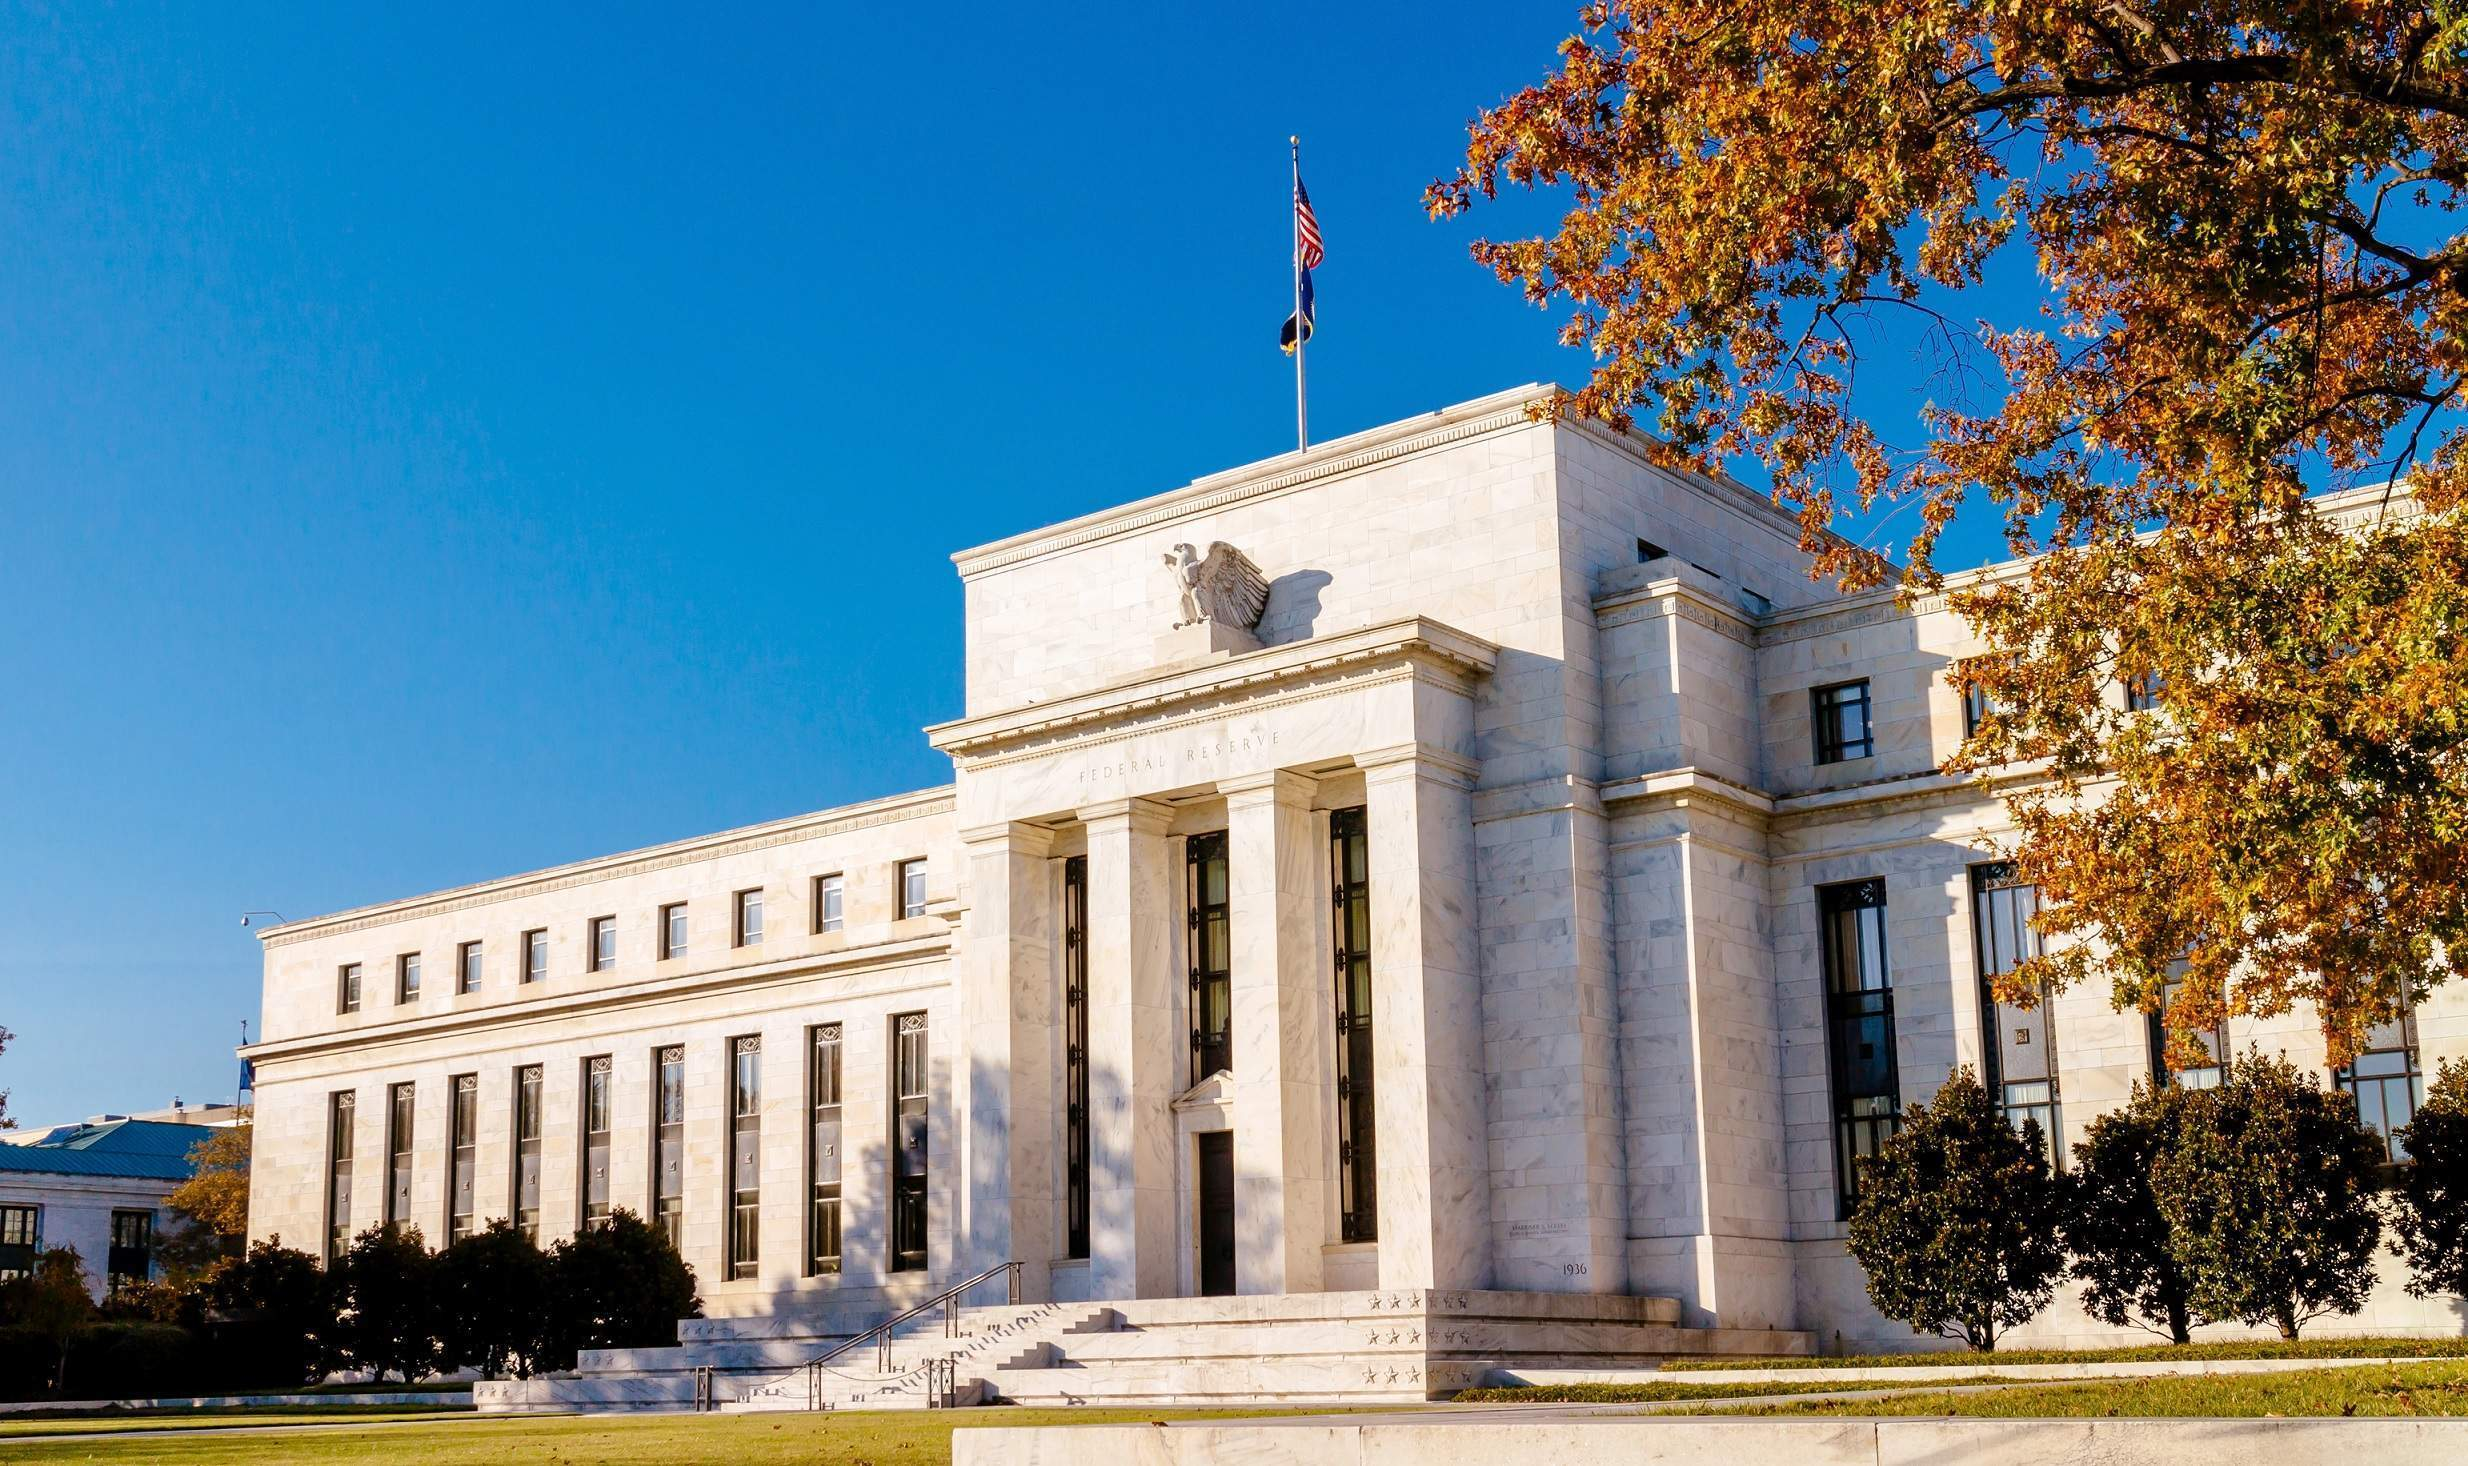 US Federal Reserve decision: Yellen likely to keep interest rates on hold